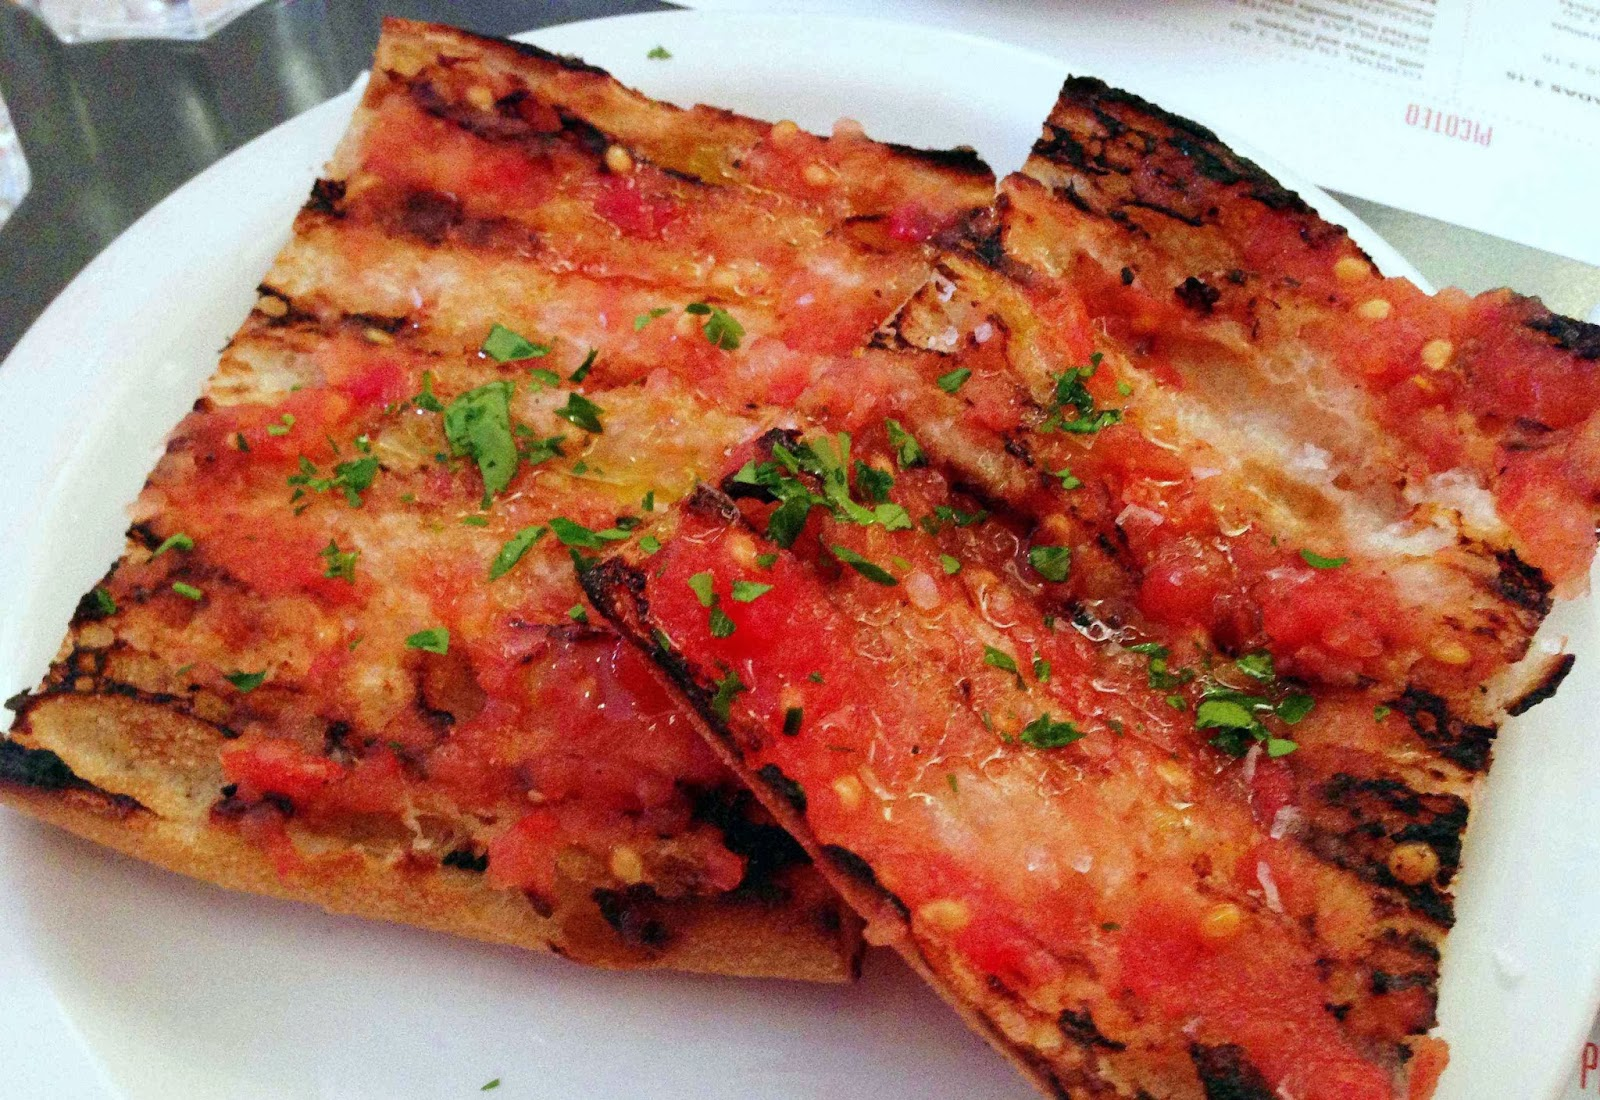 Pan de coca - tomato and garlic bread - Tapas Brindisa Soho